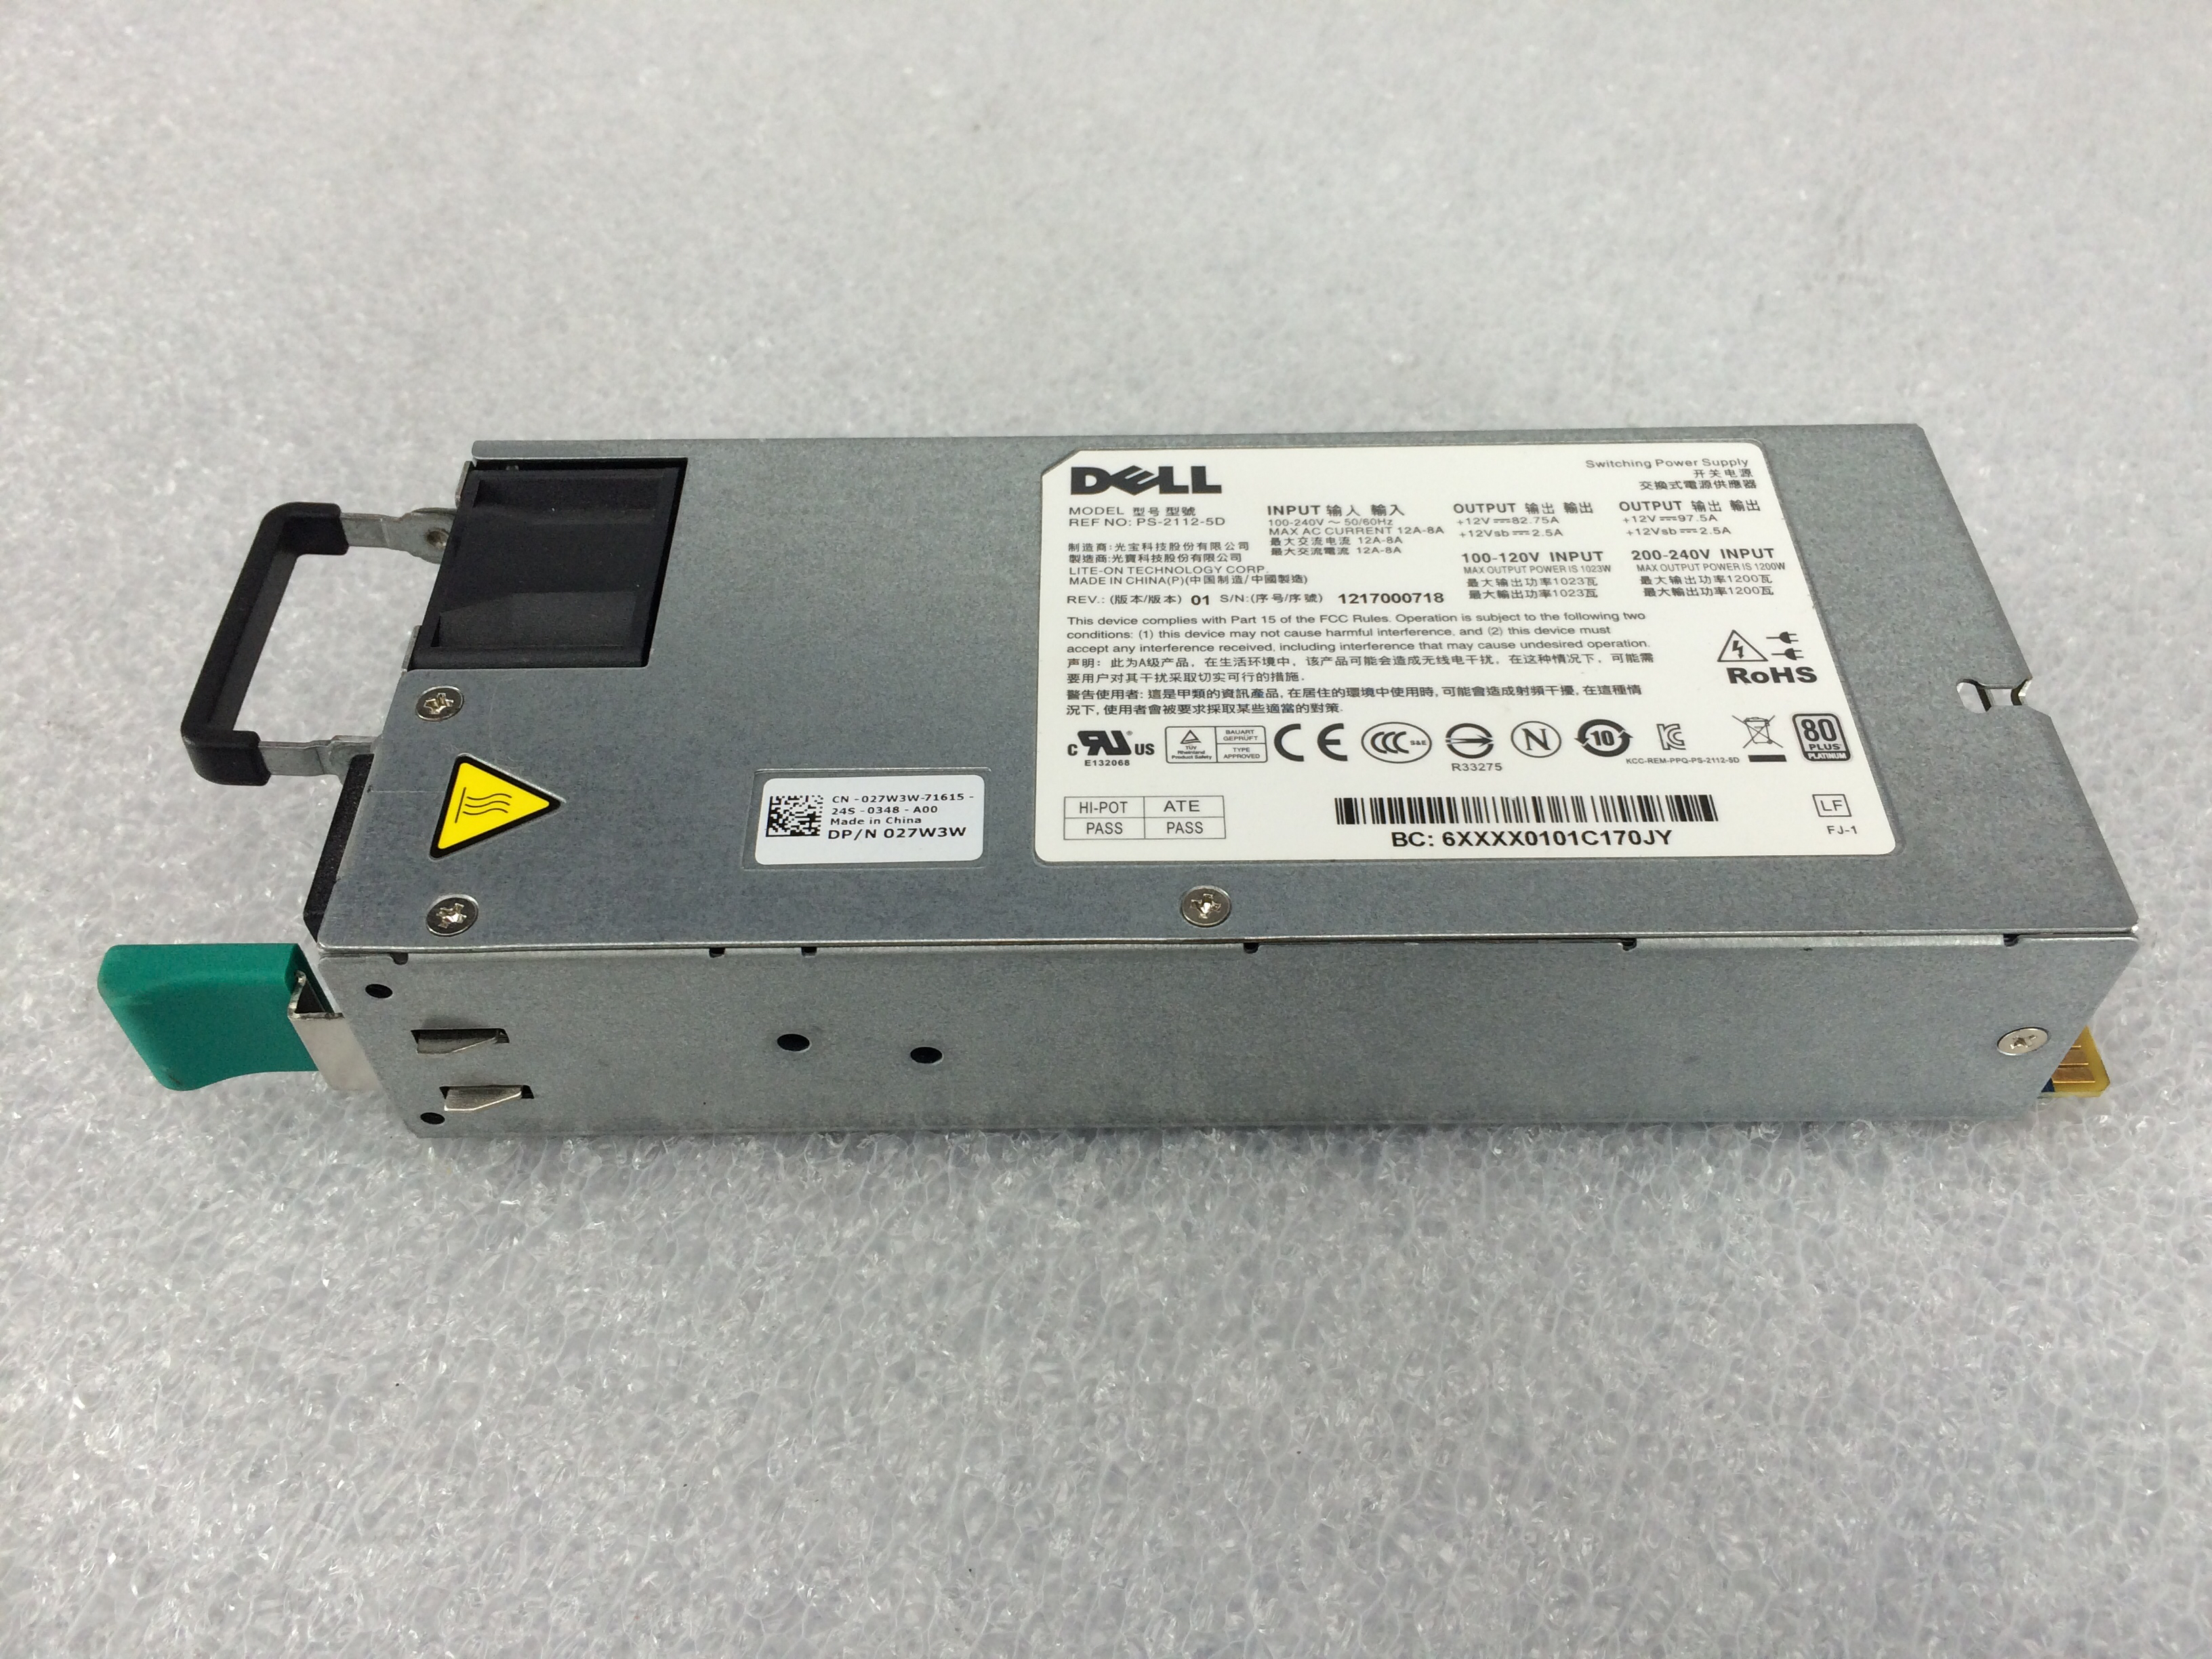 DELL POWEREDGE C6000/C6220 1200W HOT SWAP POWER SUPPLY (27W3W)